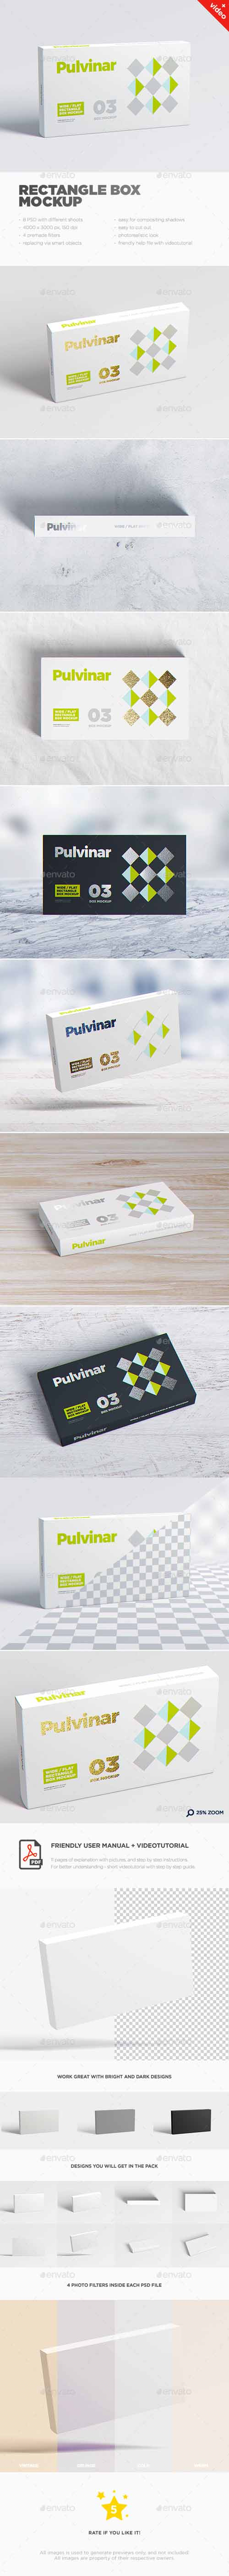 Box / Packaging MockUp - Wide/ Flat Rectangle 17626095